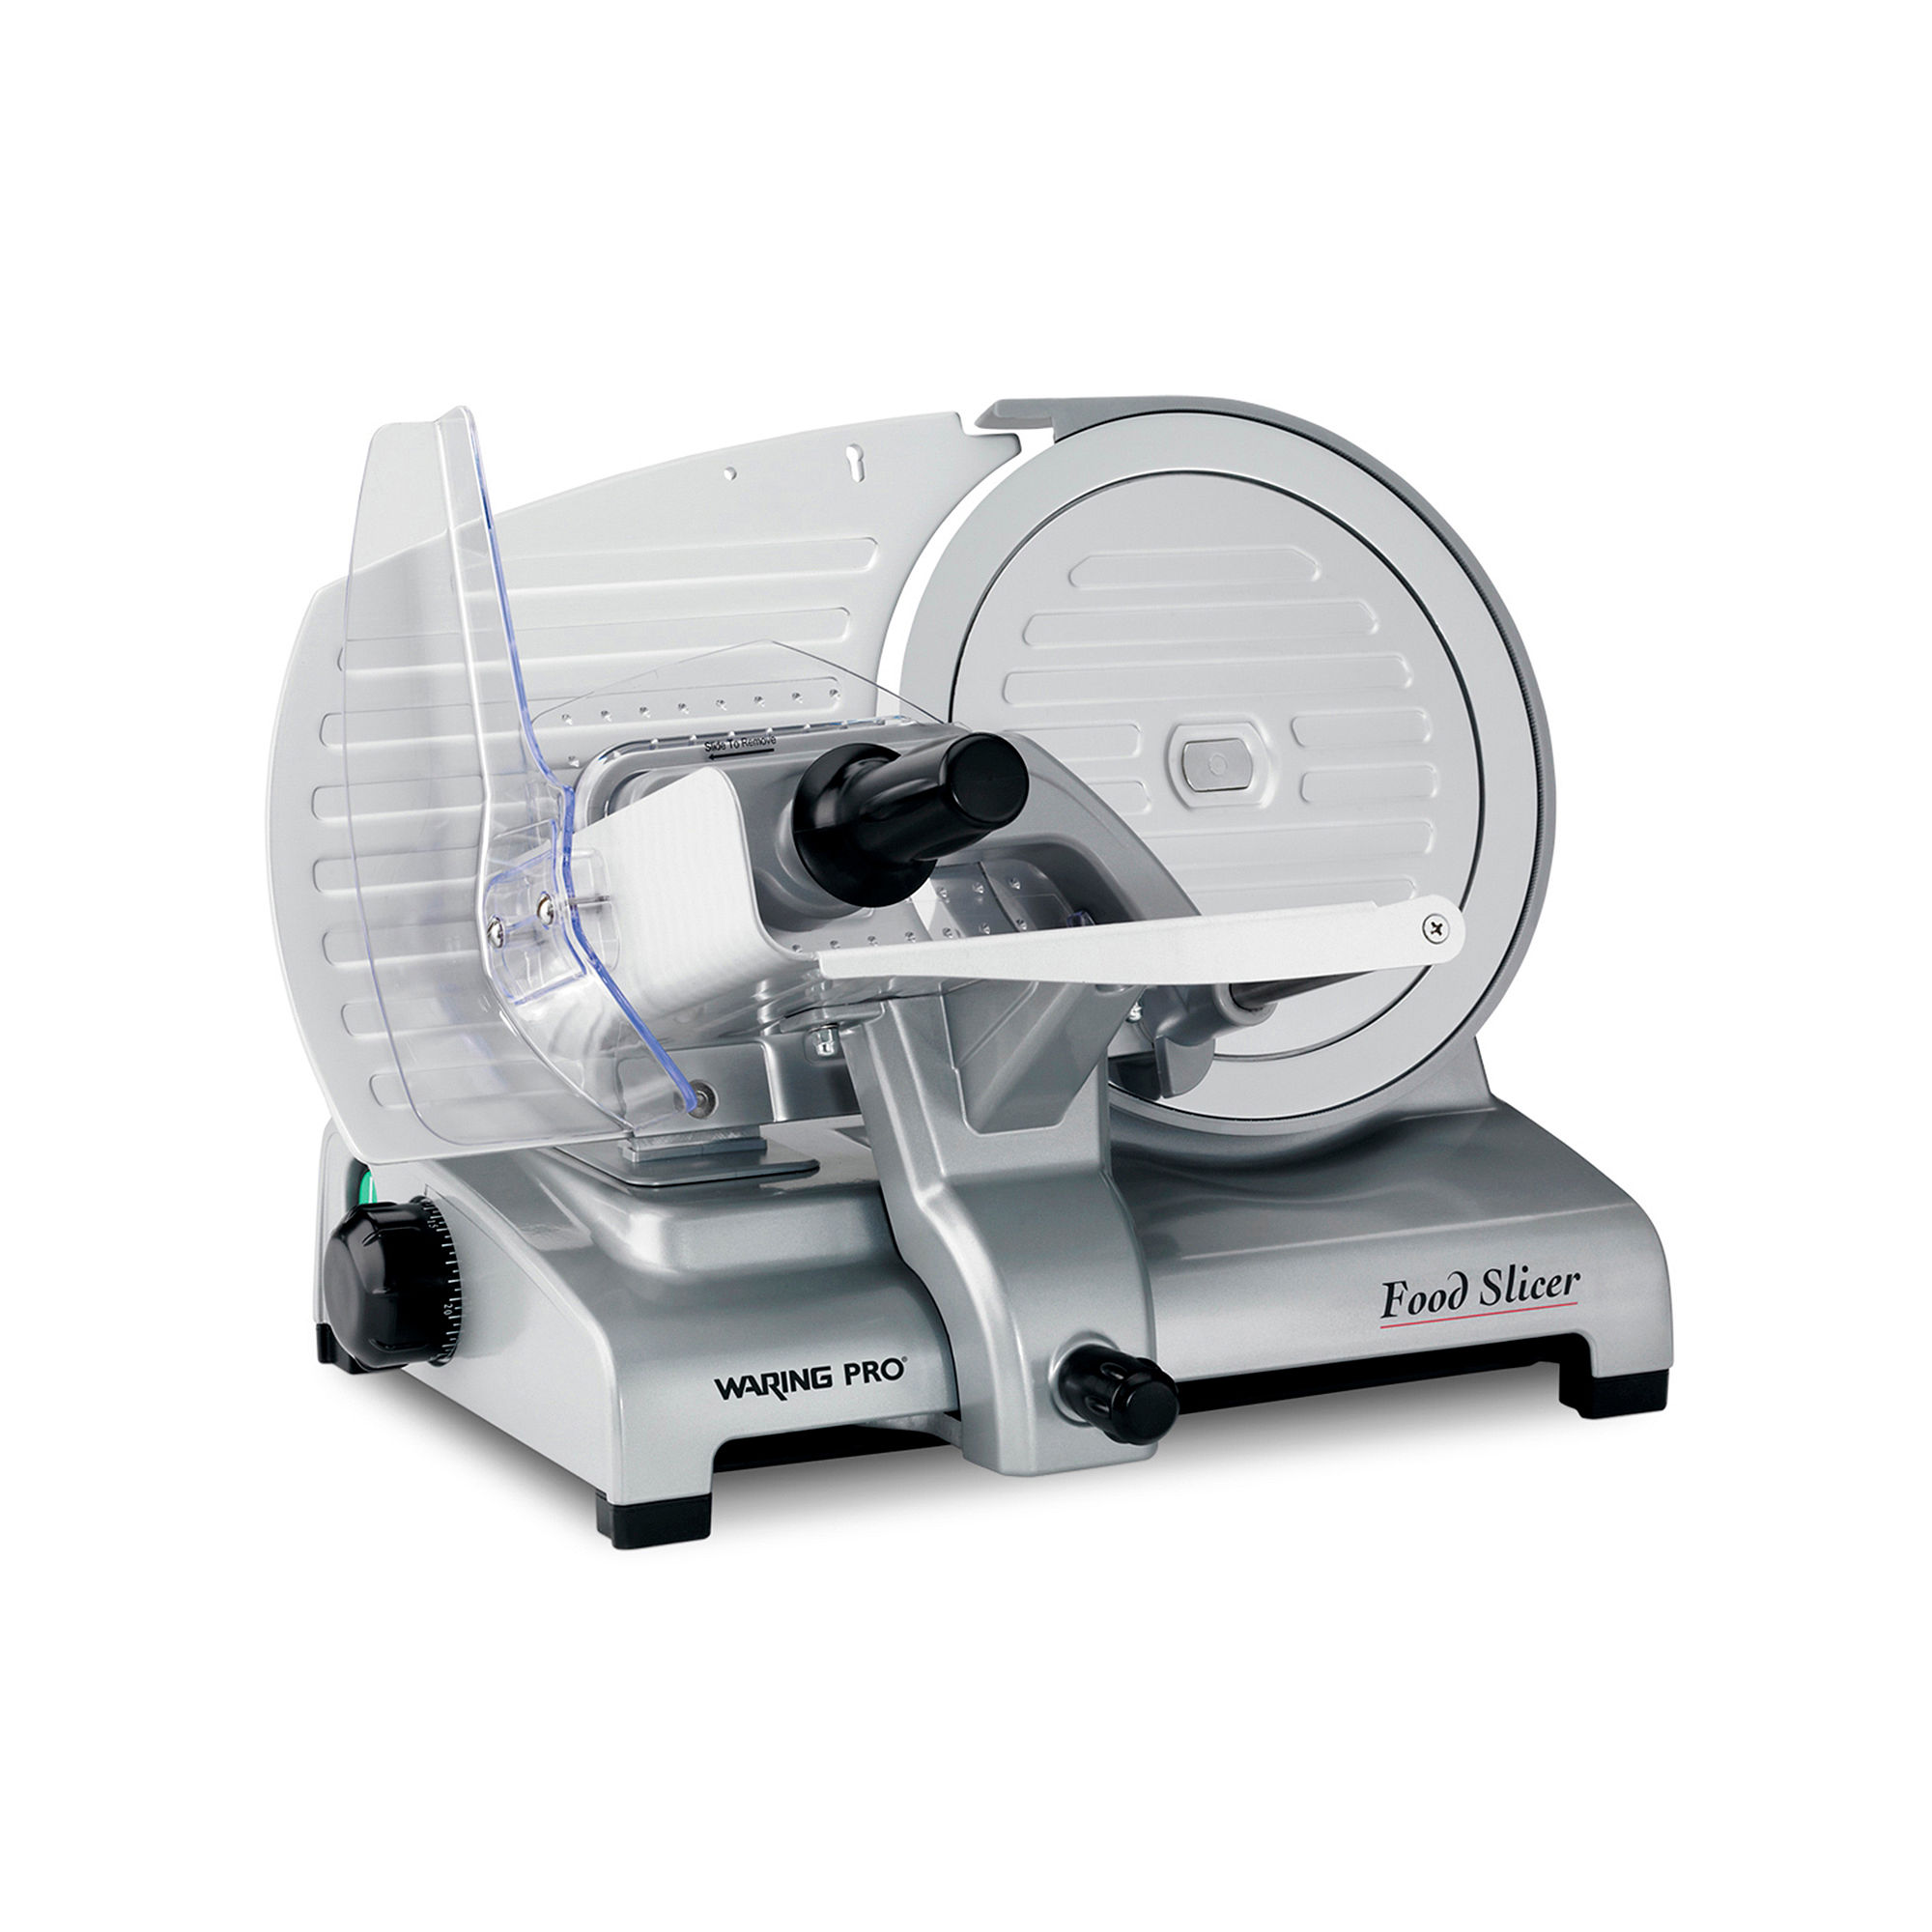 Waring Pro 8.5in Food Slicer